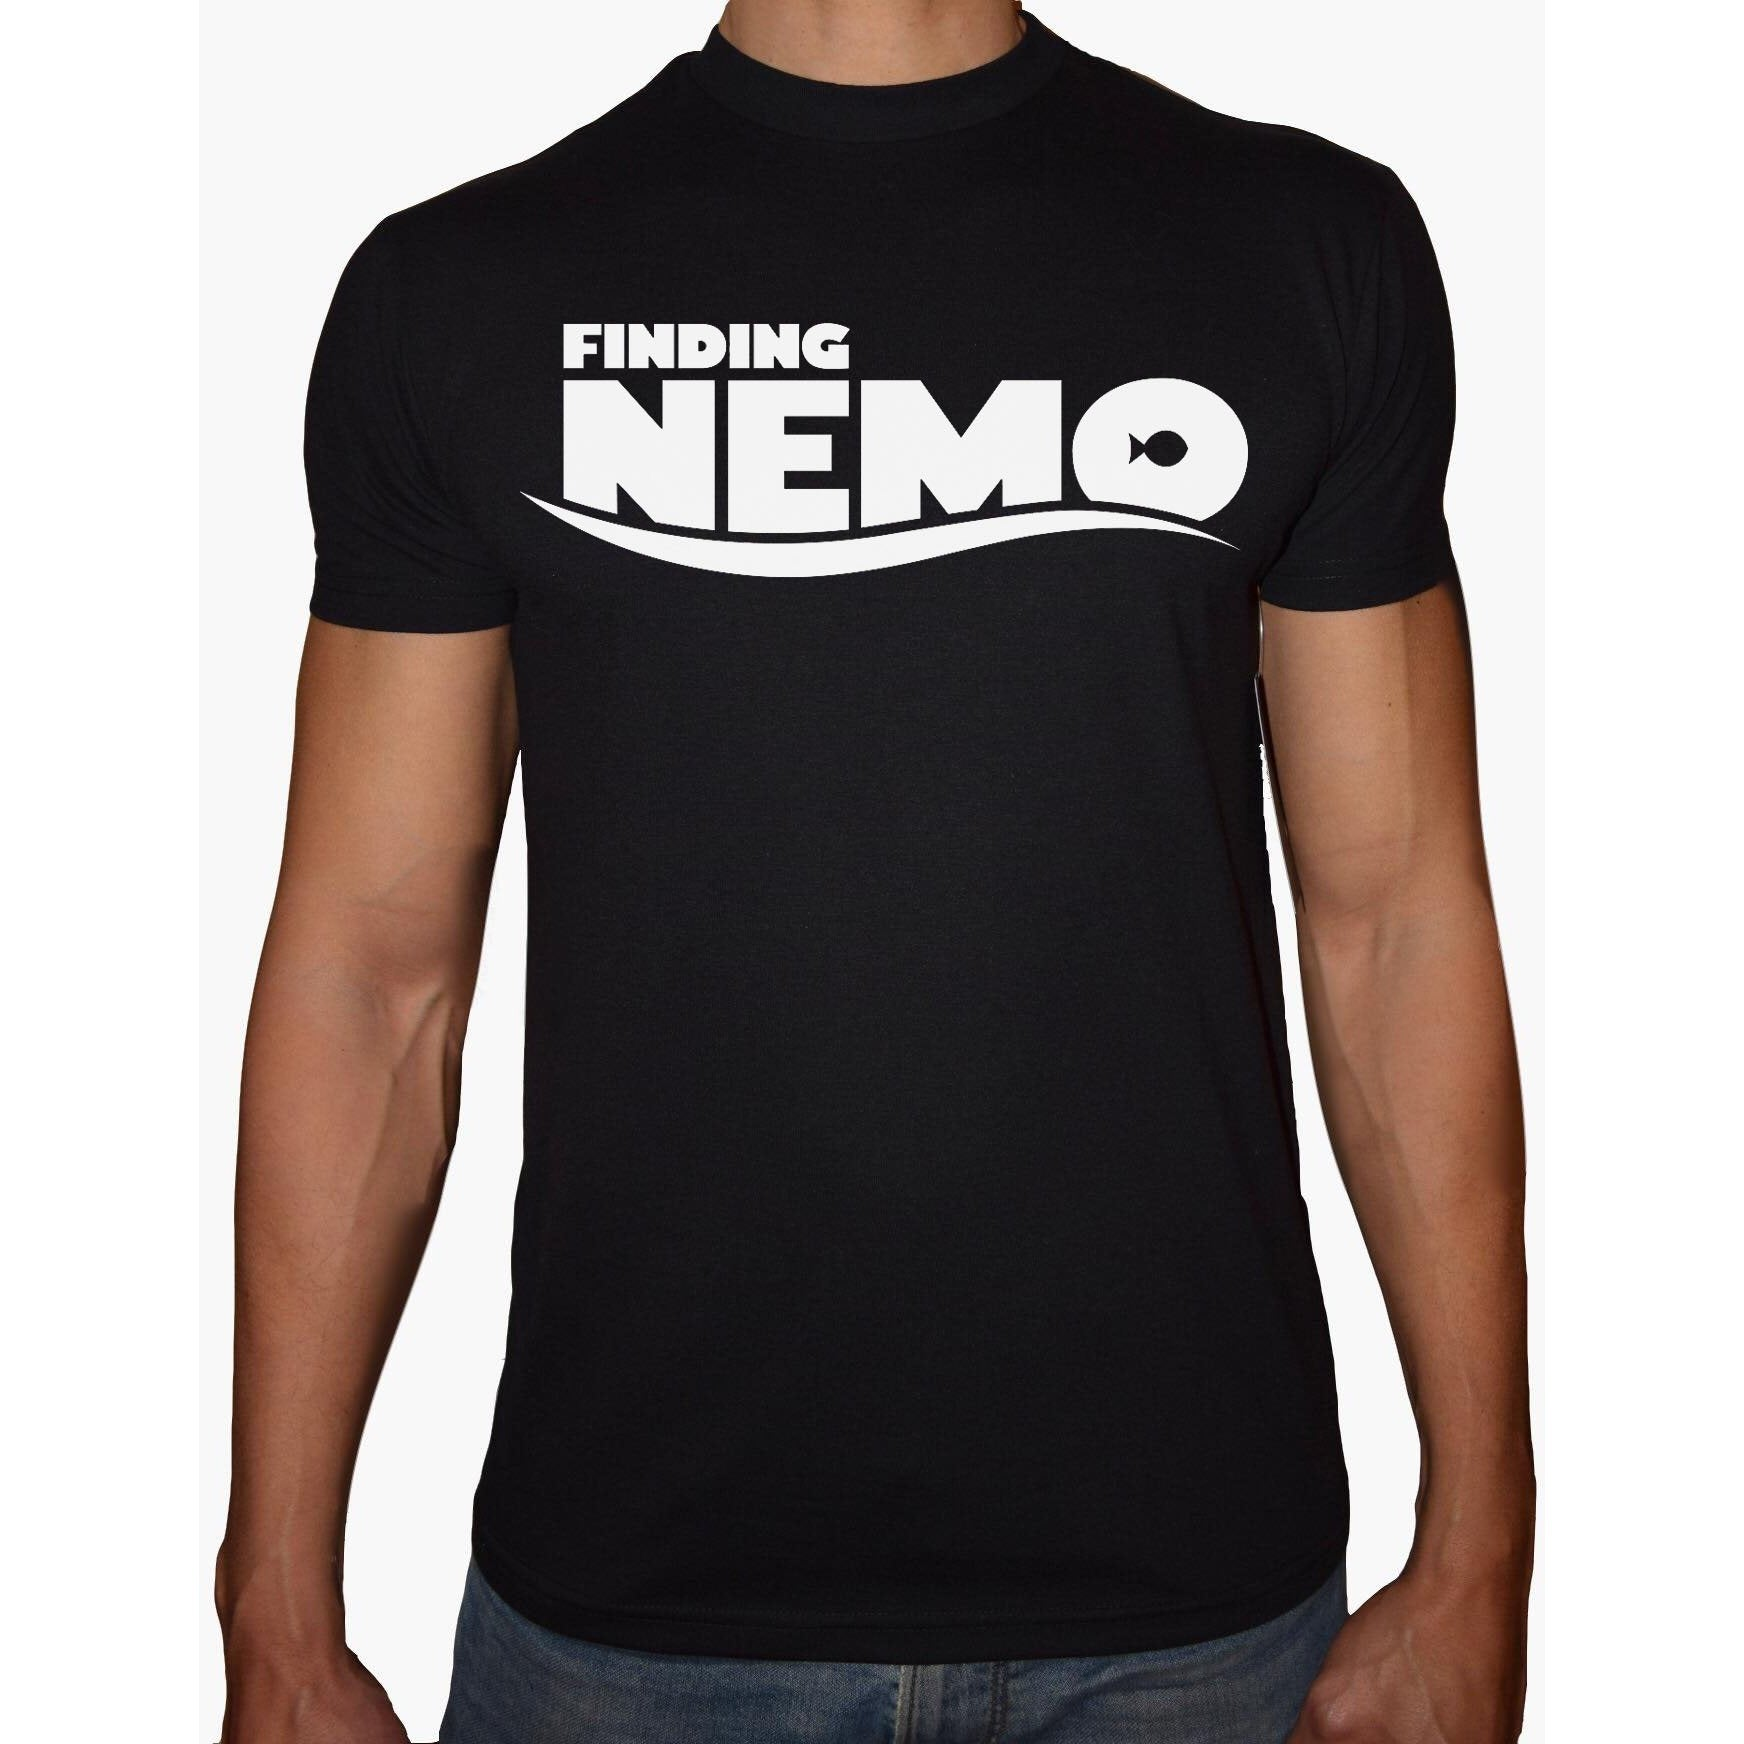 Phoenix BLACK Round Neck Printed T-Shirt Men (Finding nemo)